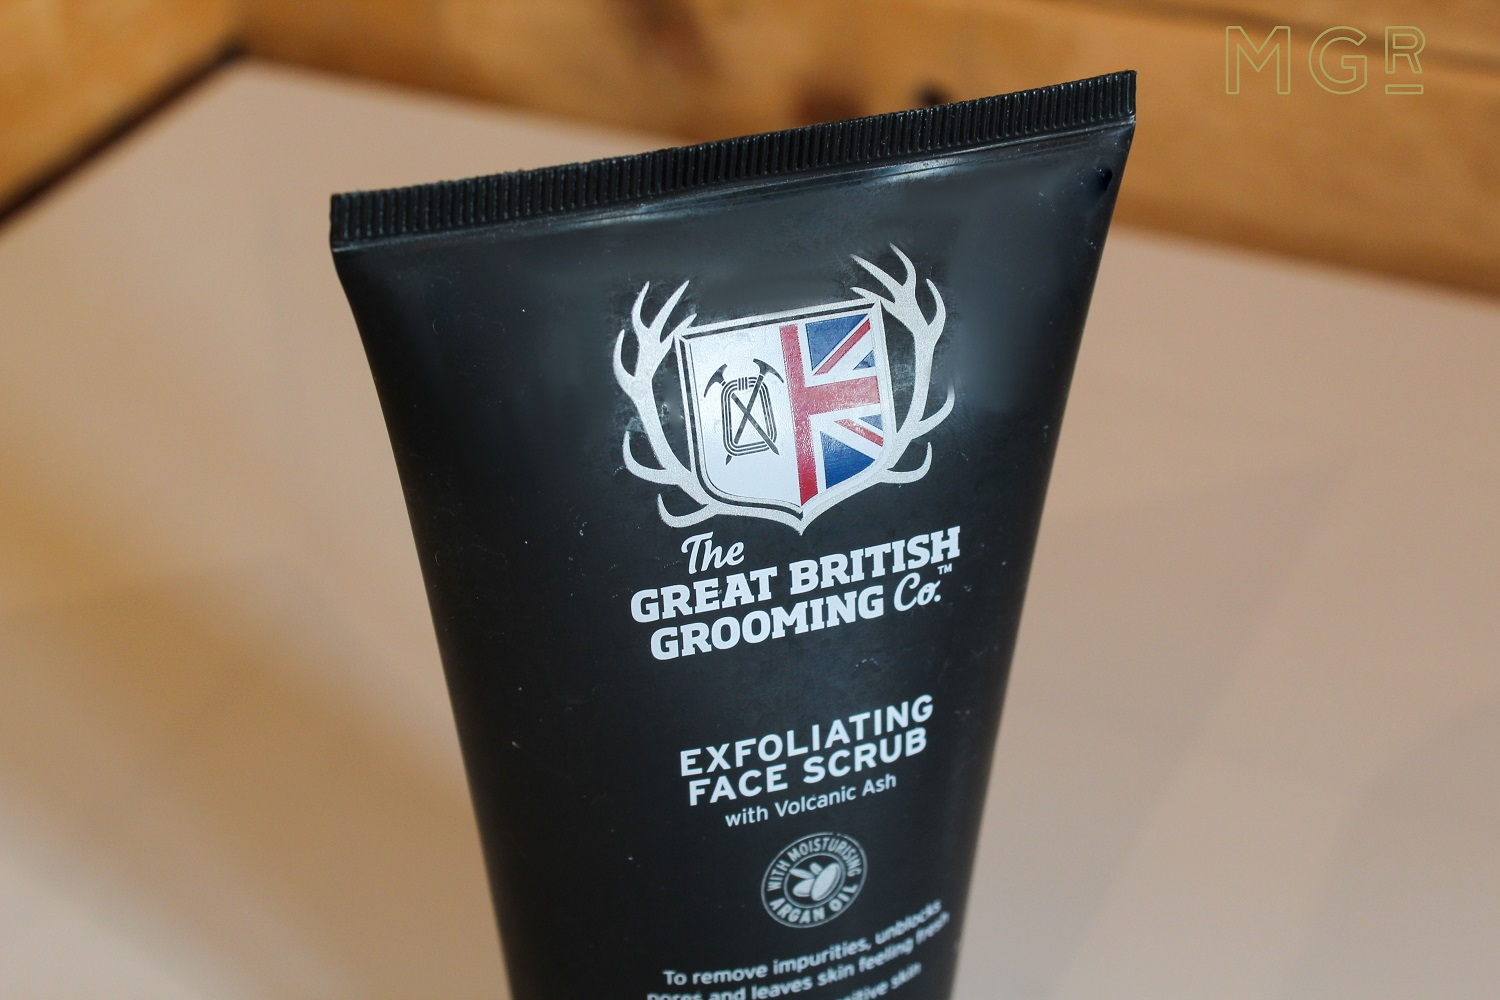 great-british-grooming-co-exfoliating-face-scrub-review-1